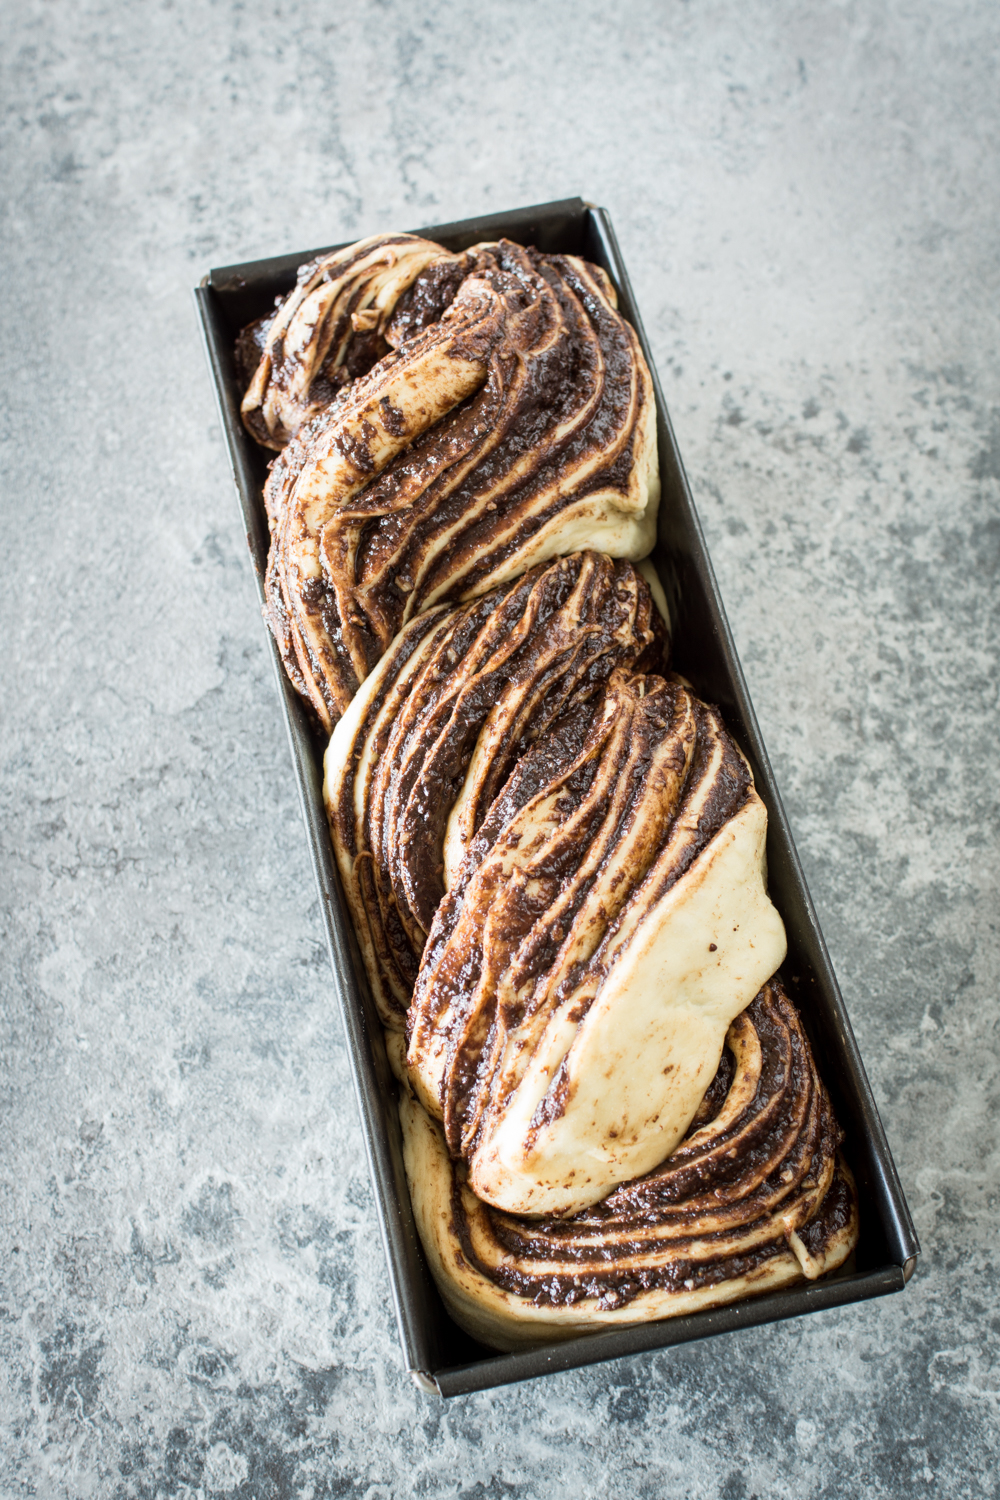 Chocolate Nut Babka - Simple recipe and step-by-step instructions